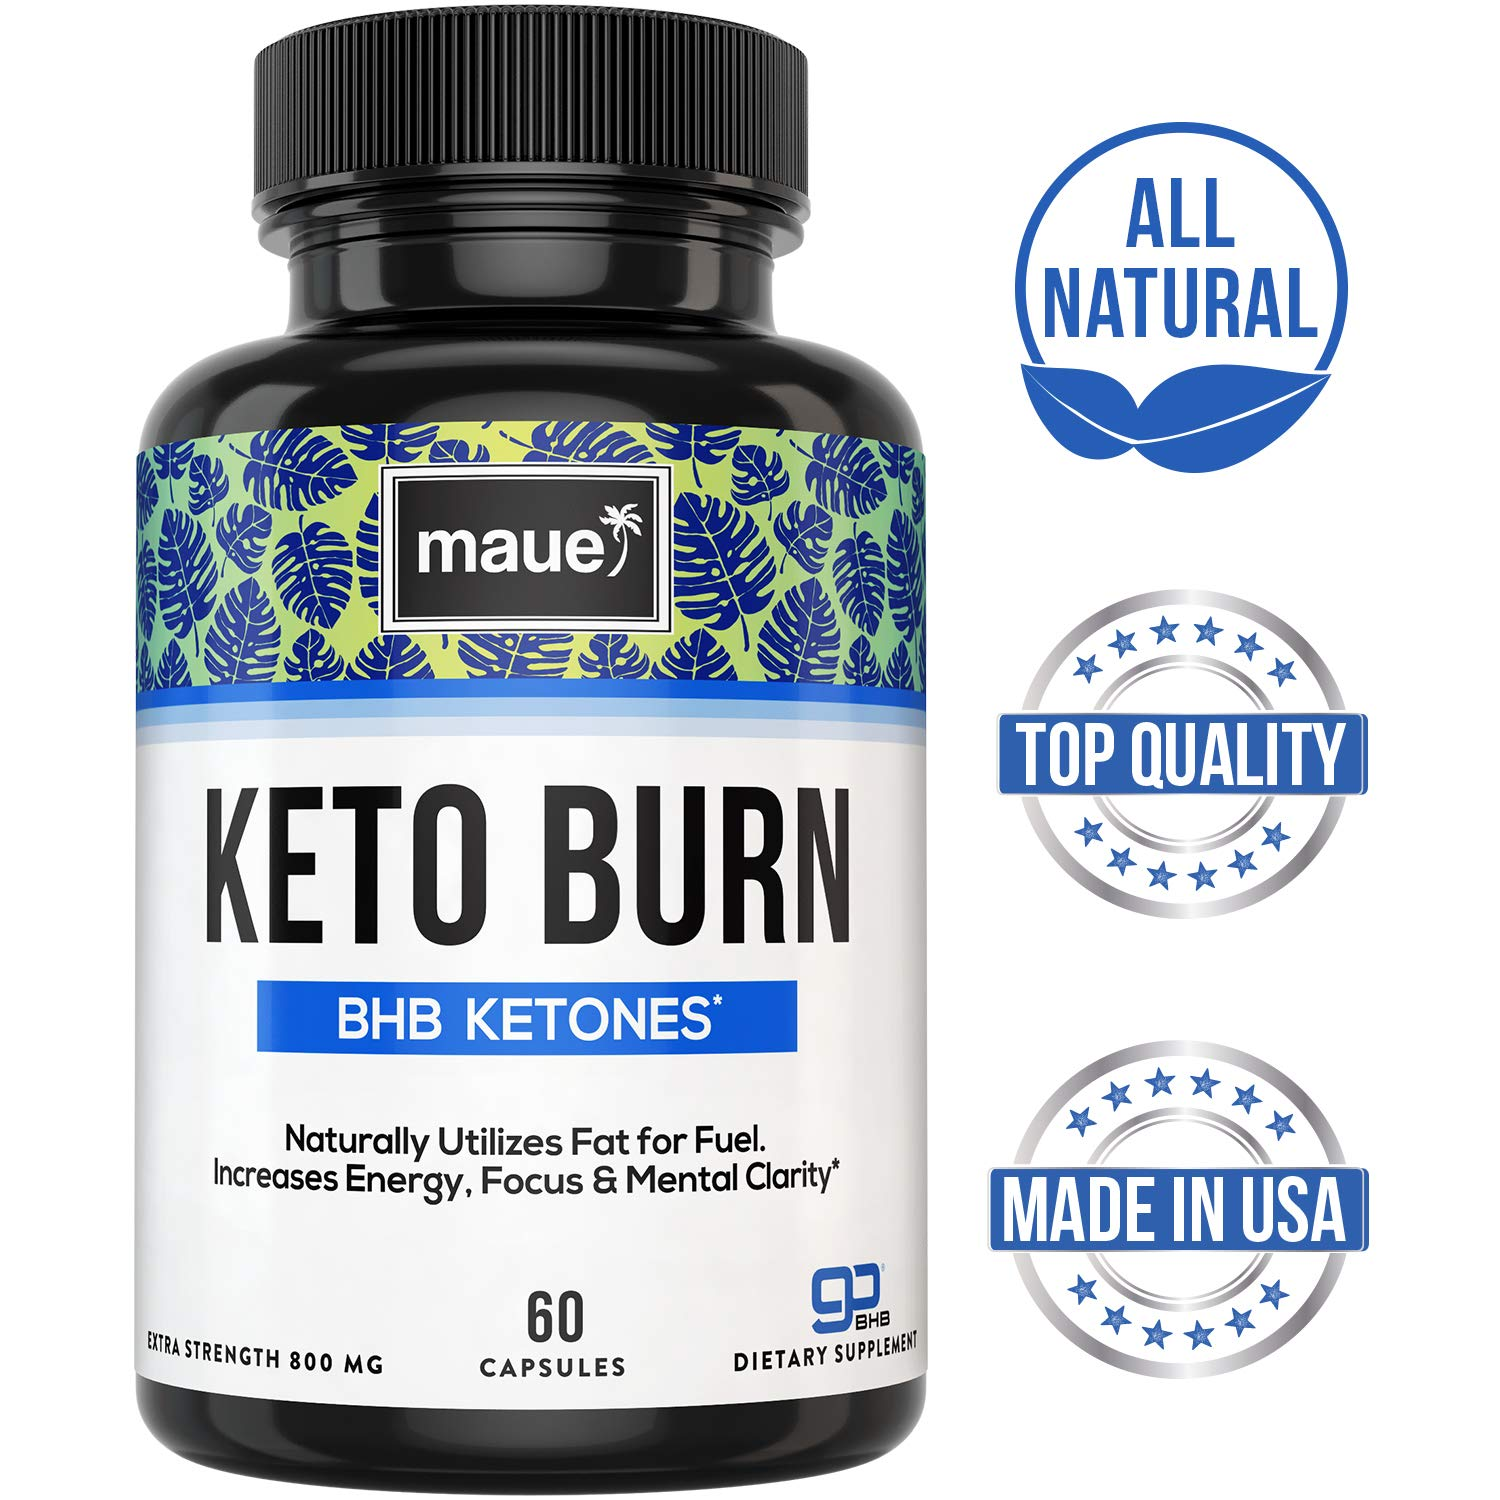 Premium Keto Diet Pills - Advanced Keto Burn BHB - Boost Energy & Focus, Manage Cravings, Support Metabolism - Exogenous Ketones Supplement for Women and Men - 60 Capsules by Maue